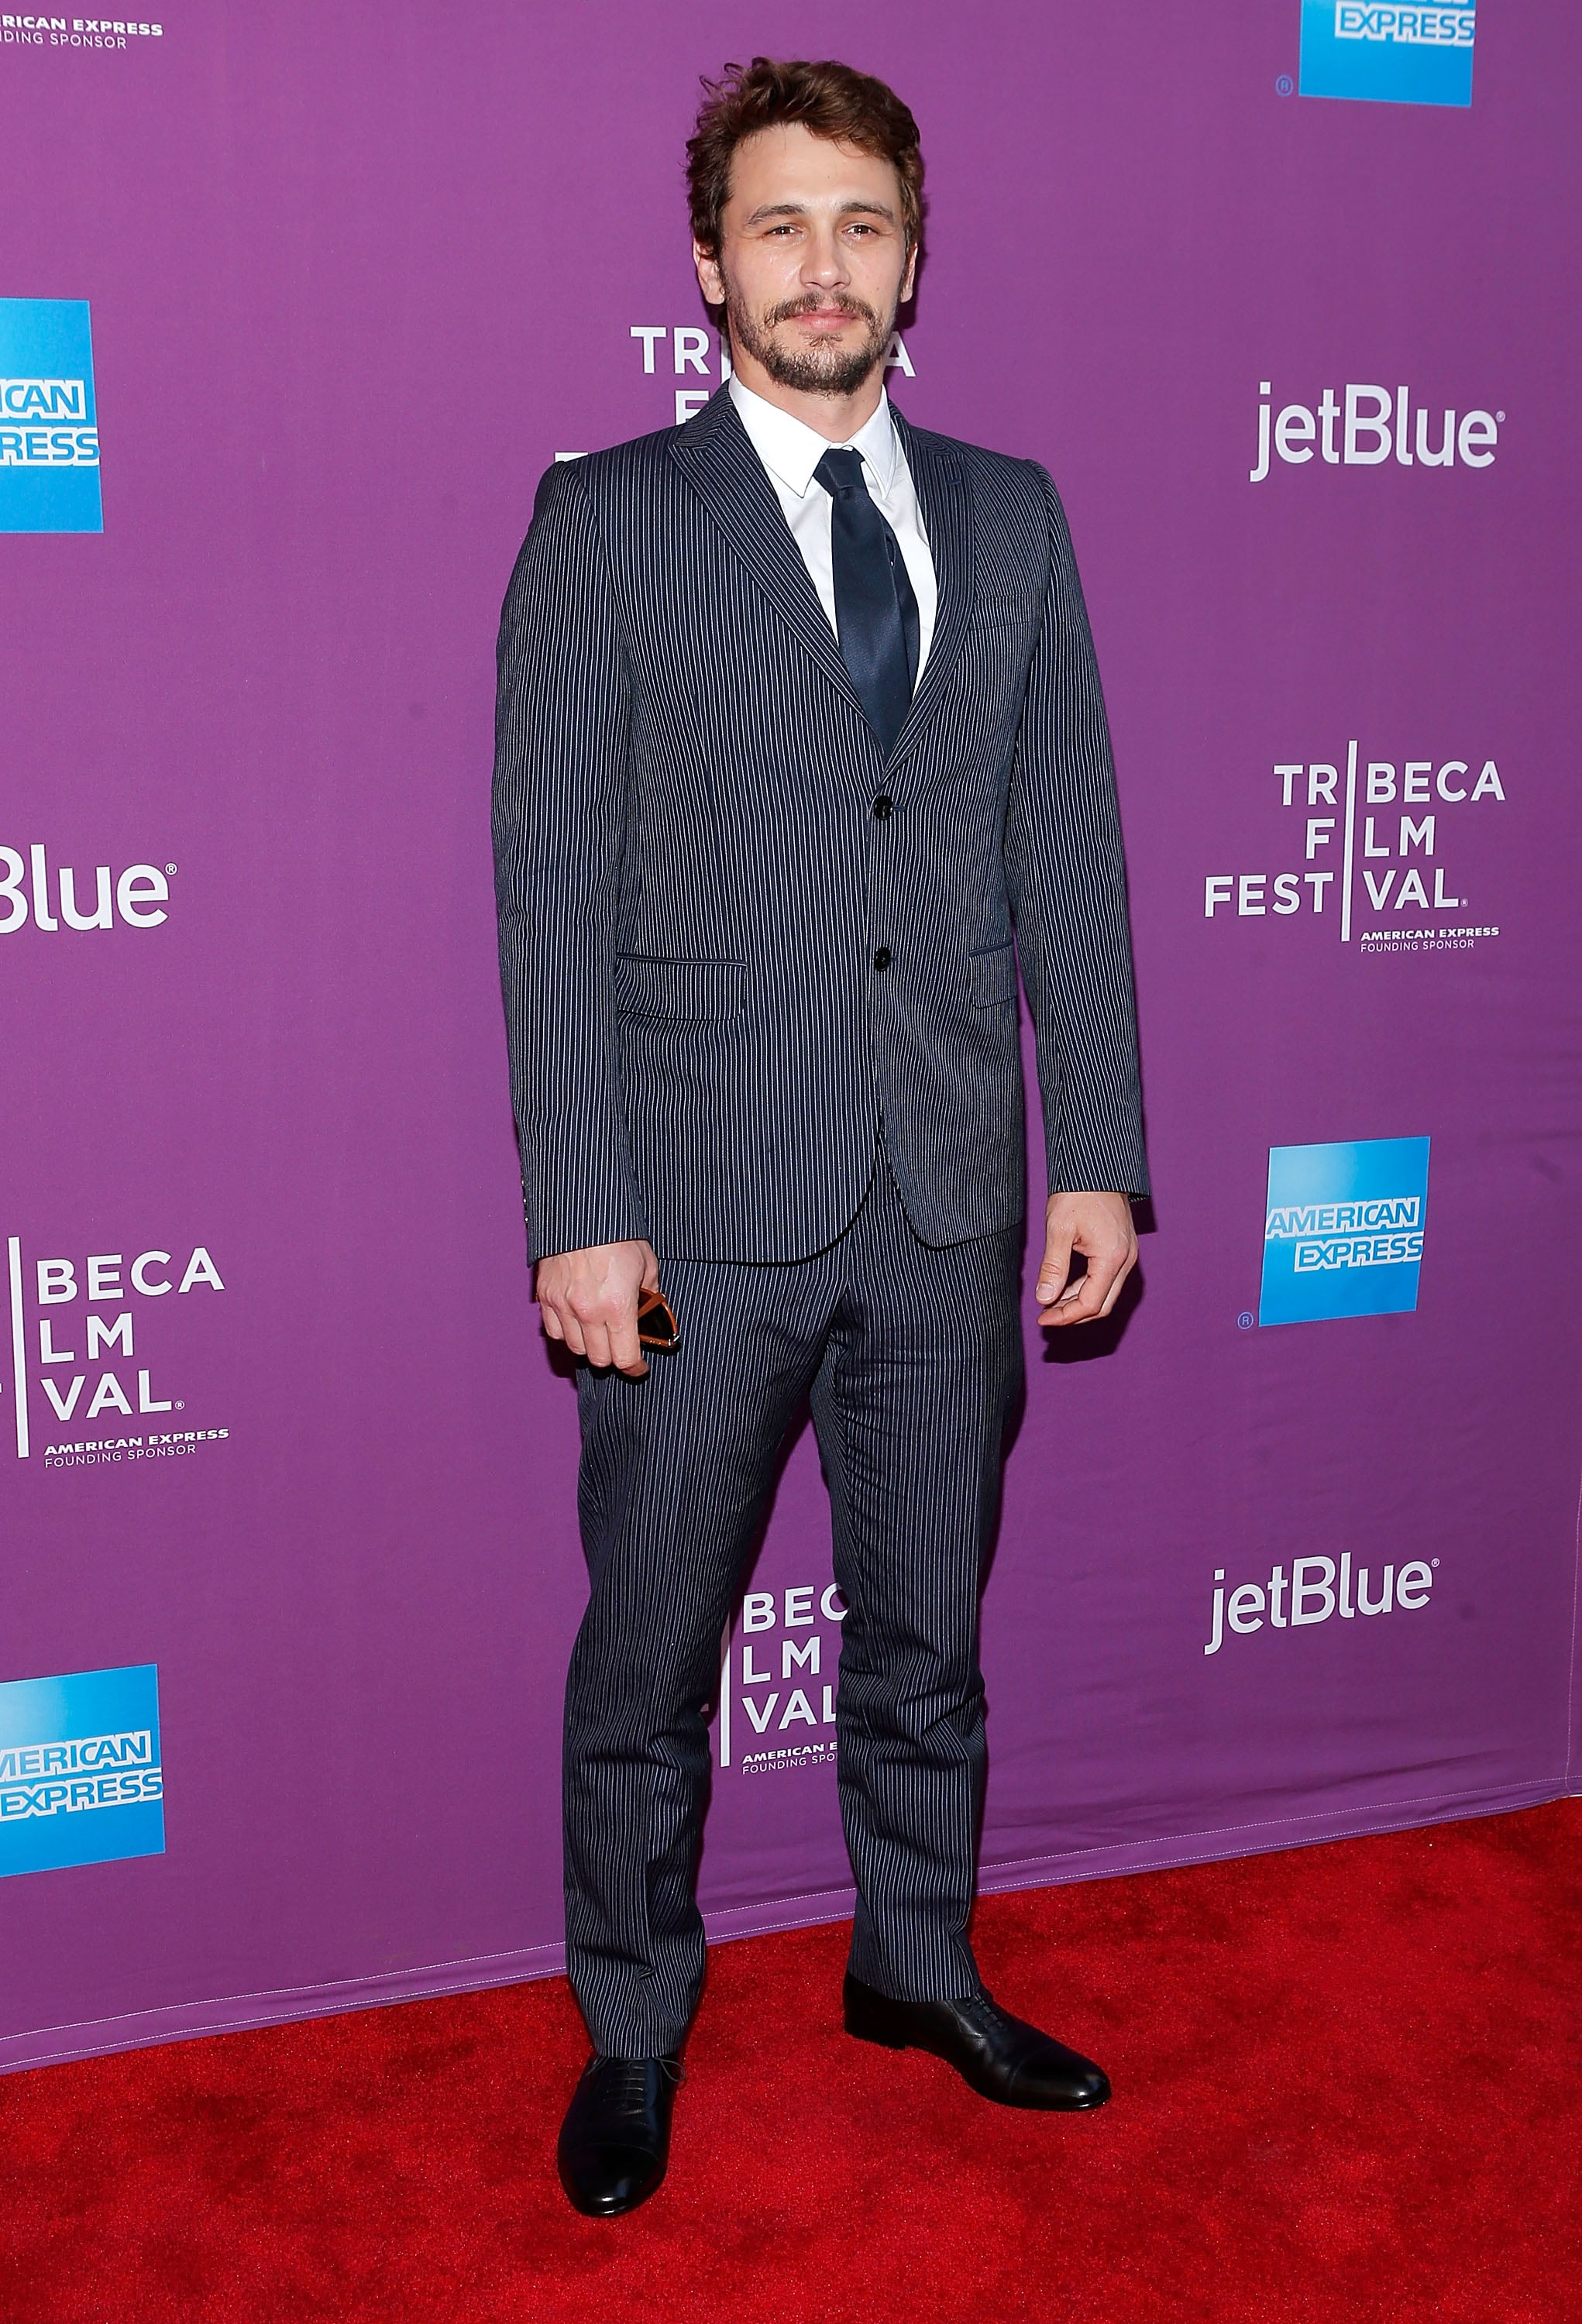 James Franco got dressed up in a suit for the premiere of The Director.